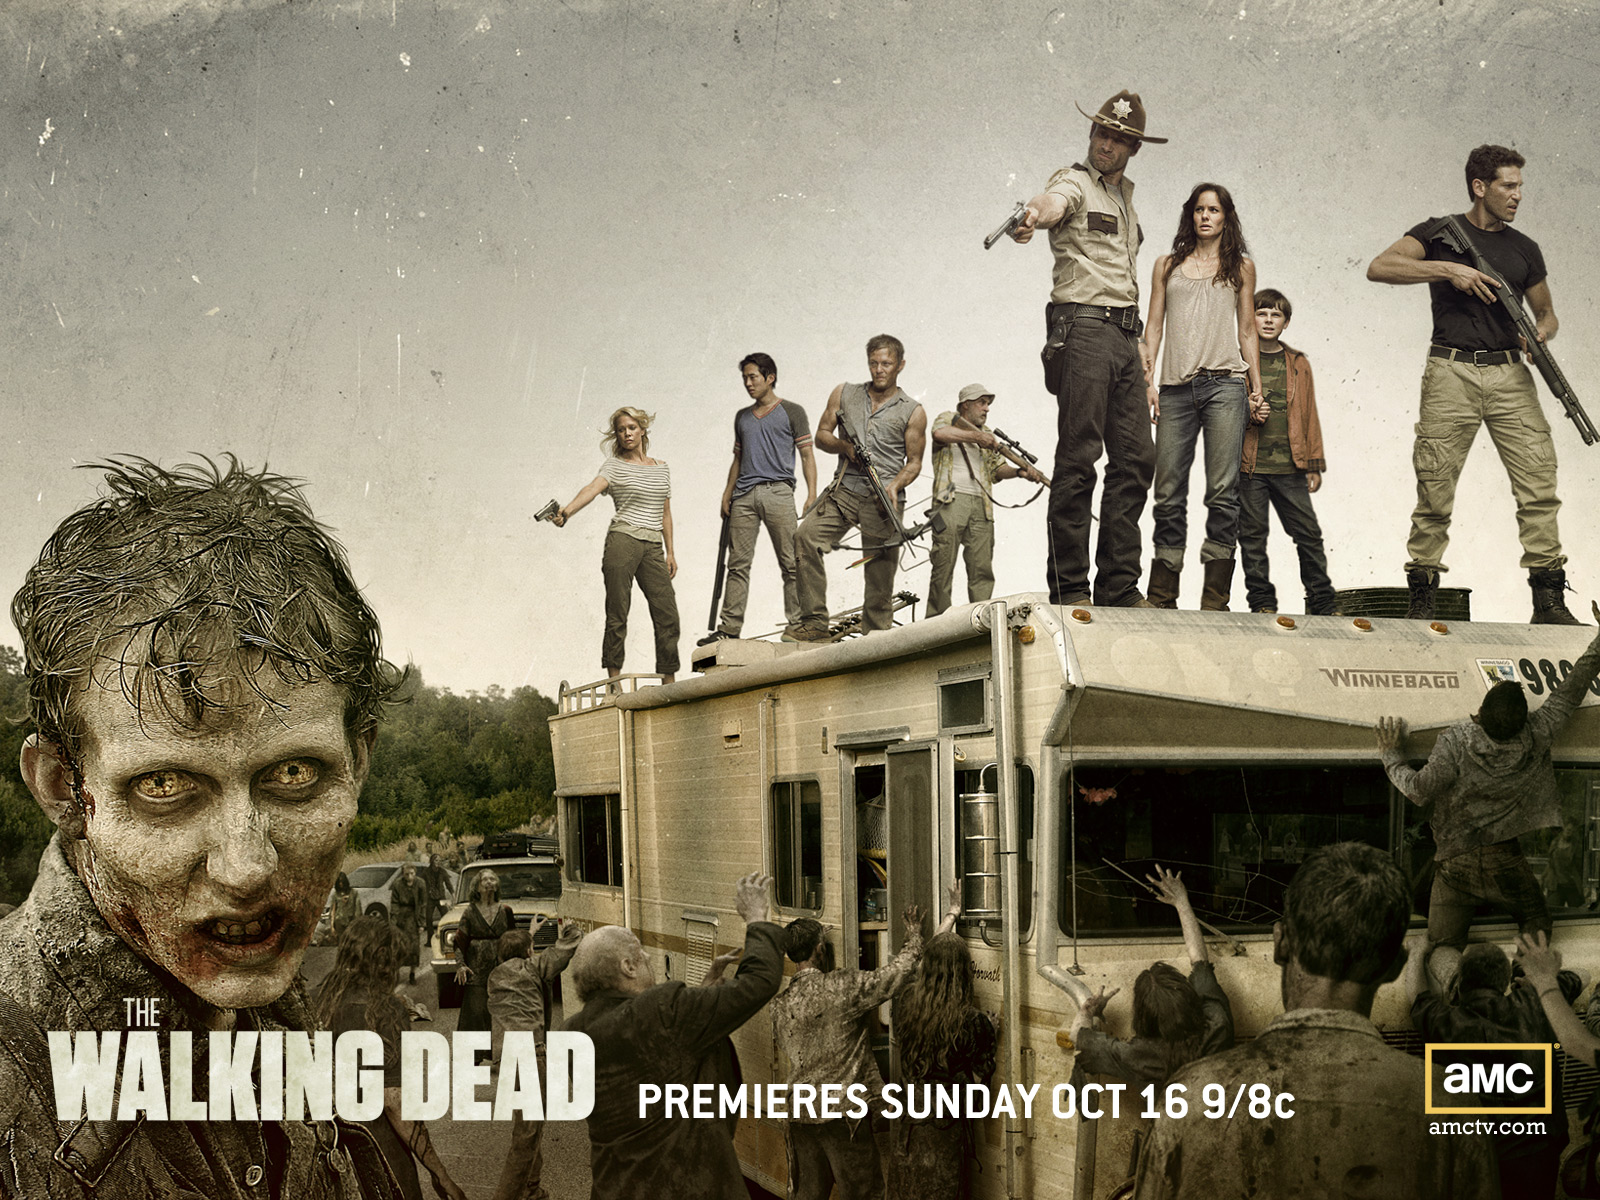 THE WALKING DEAD UNION - Parcerias/Fã Clubes - Walking Dead Brasil